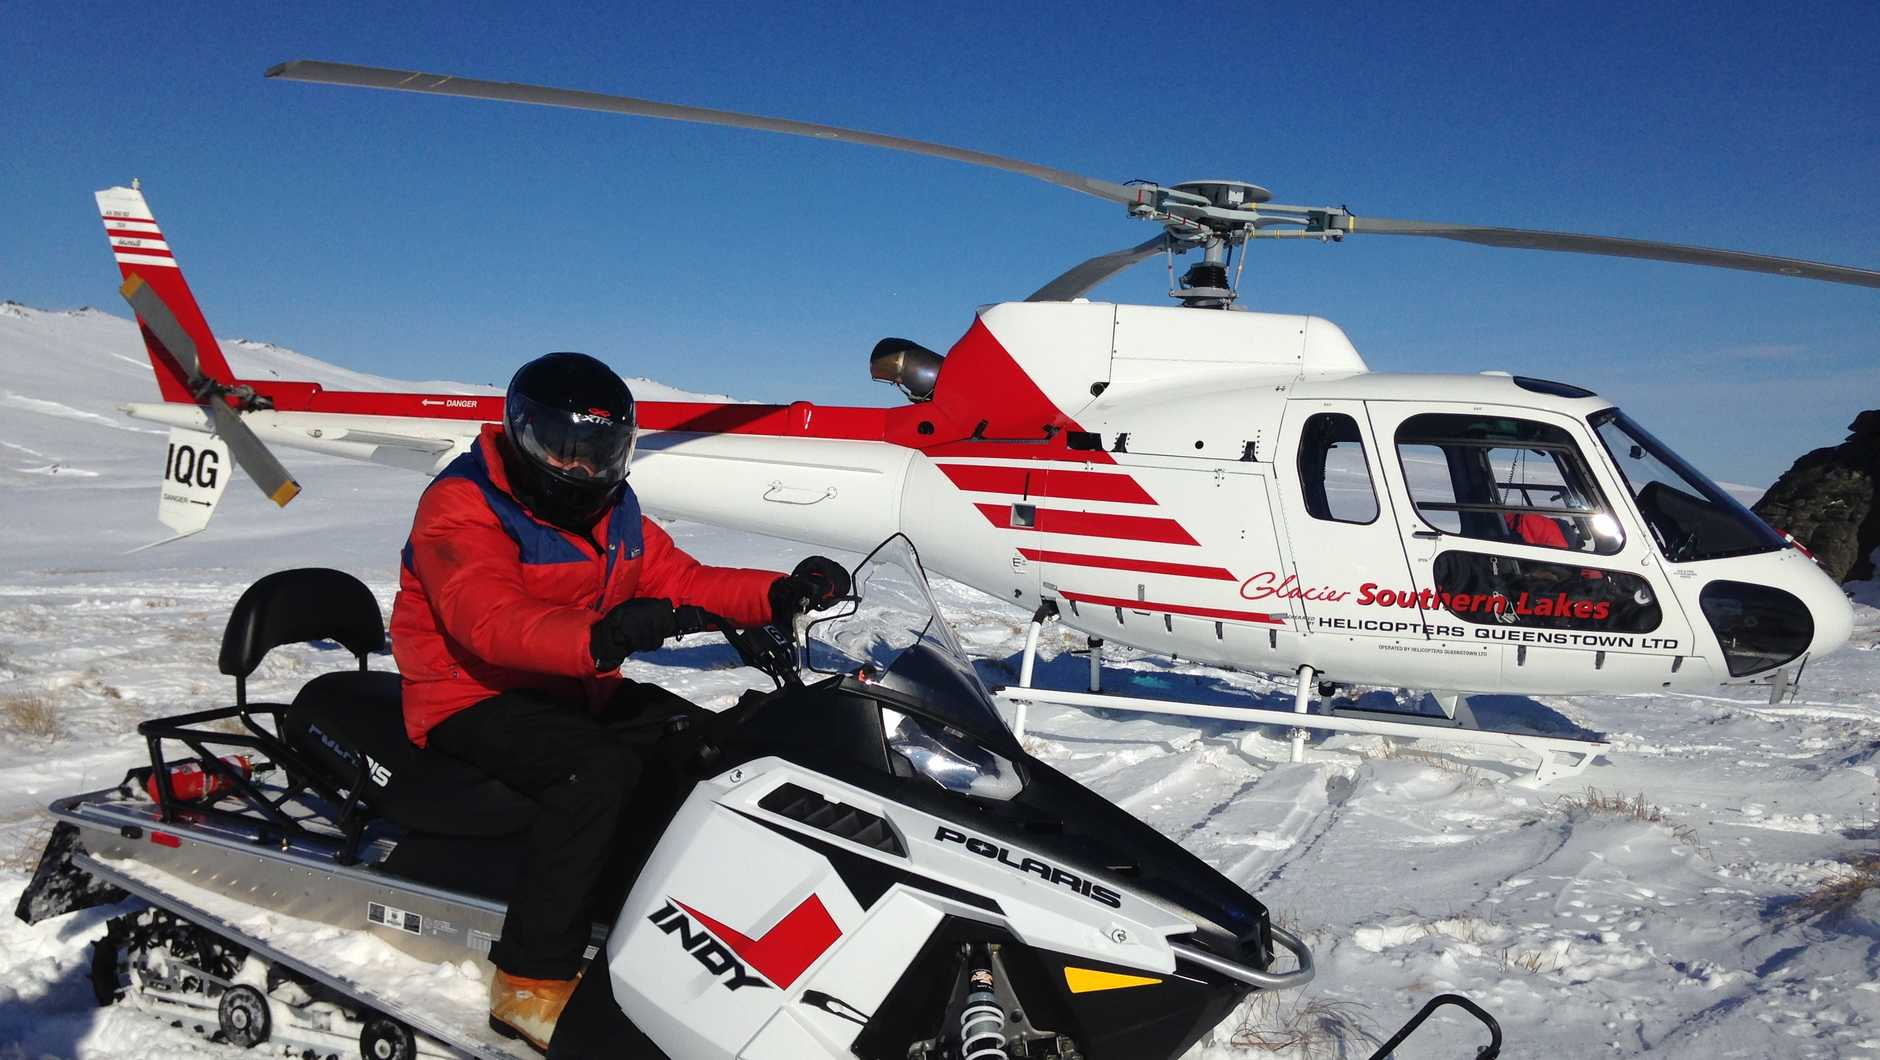 Snowmobiling-access-is-by-helicopter-only